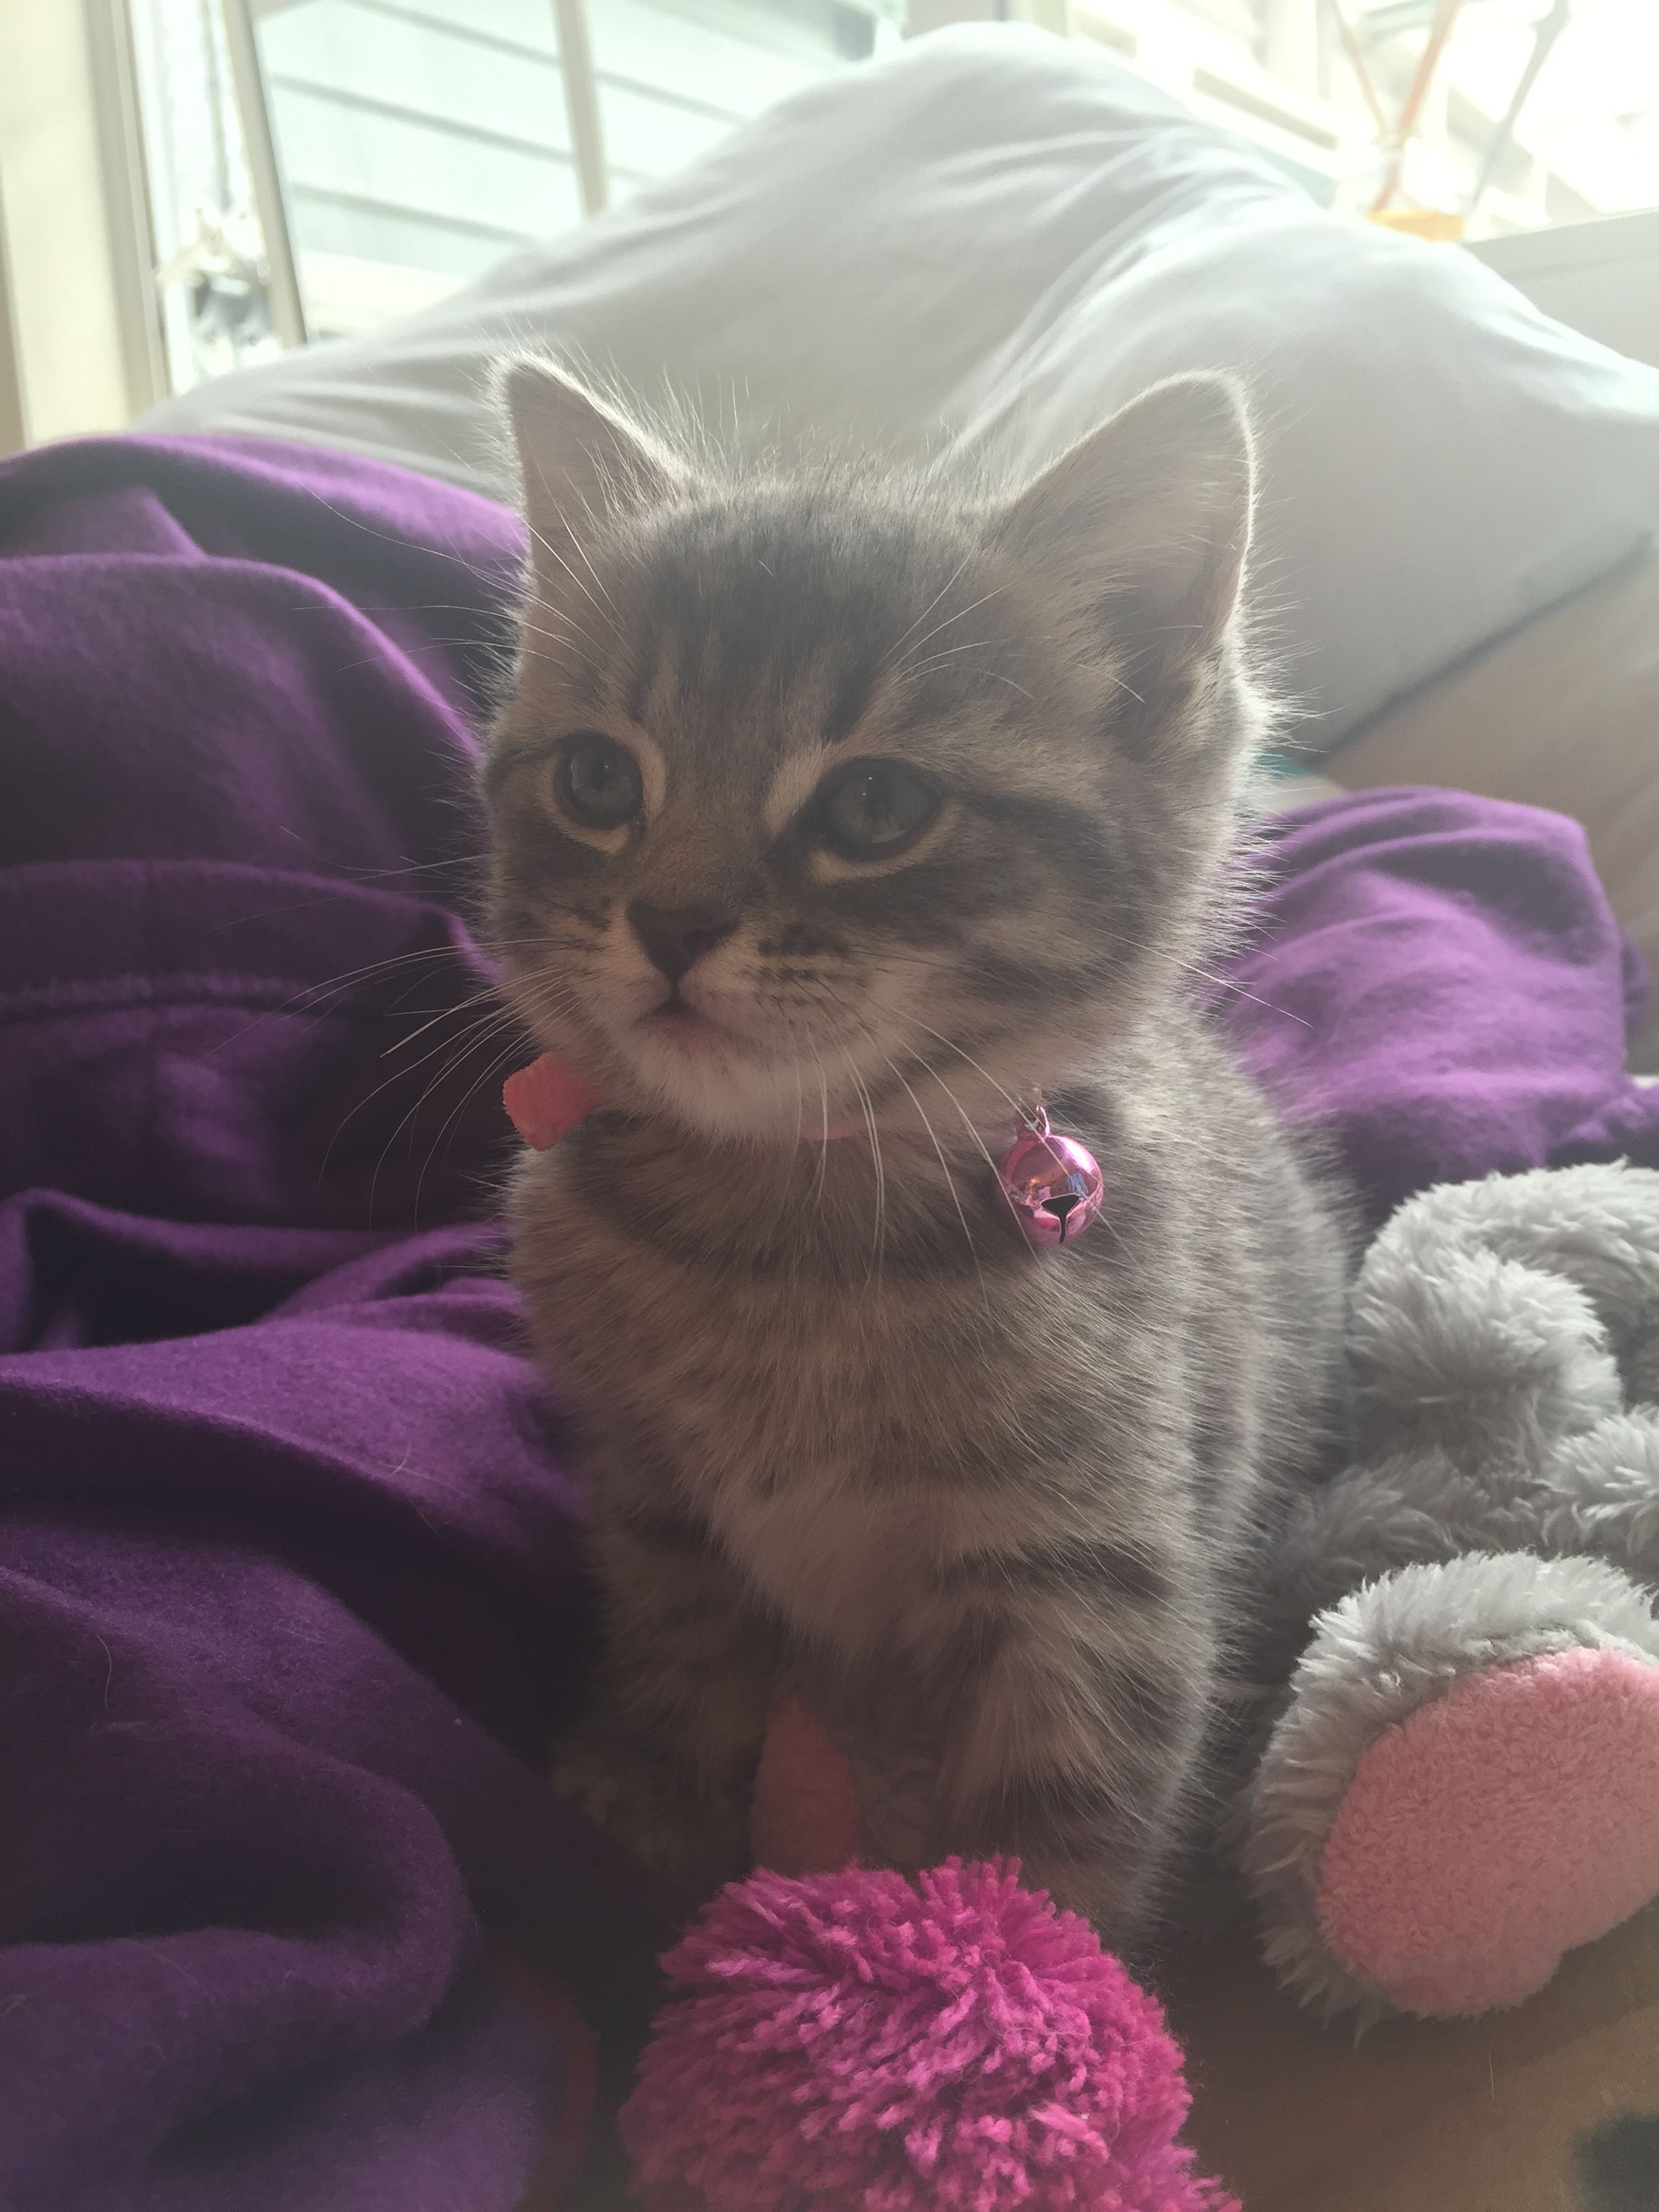 Pin By Gurol On Pawshake New Zealand Cats Cute Cats Cats All About Cats